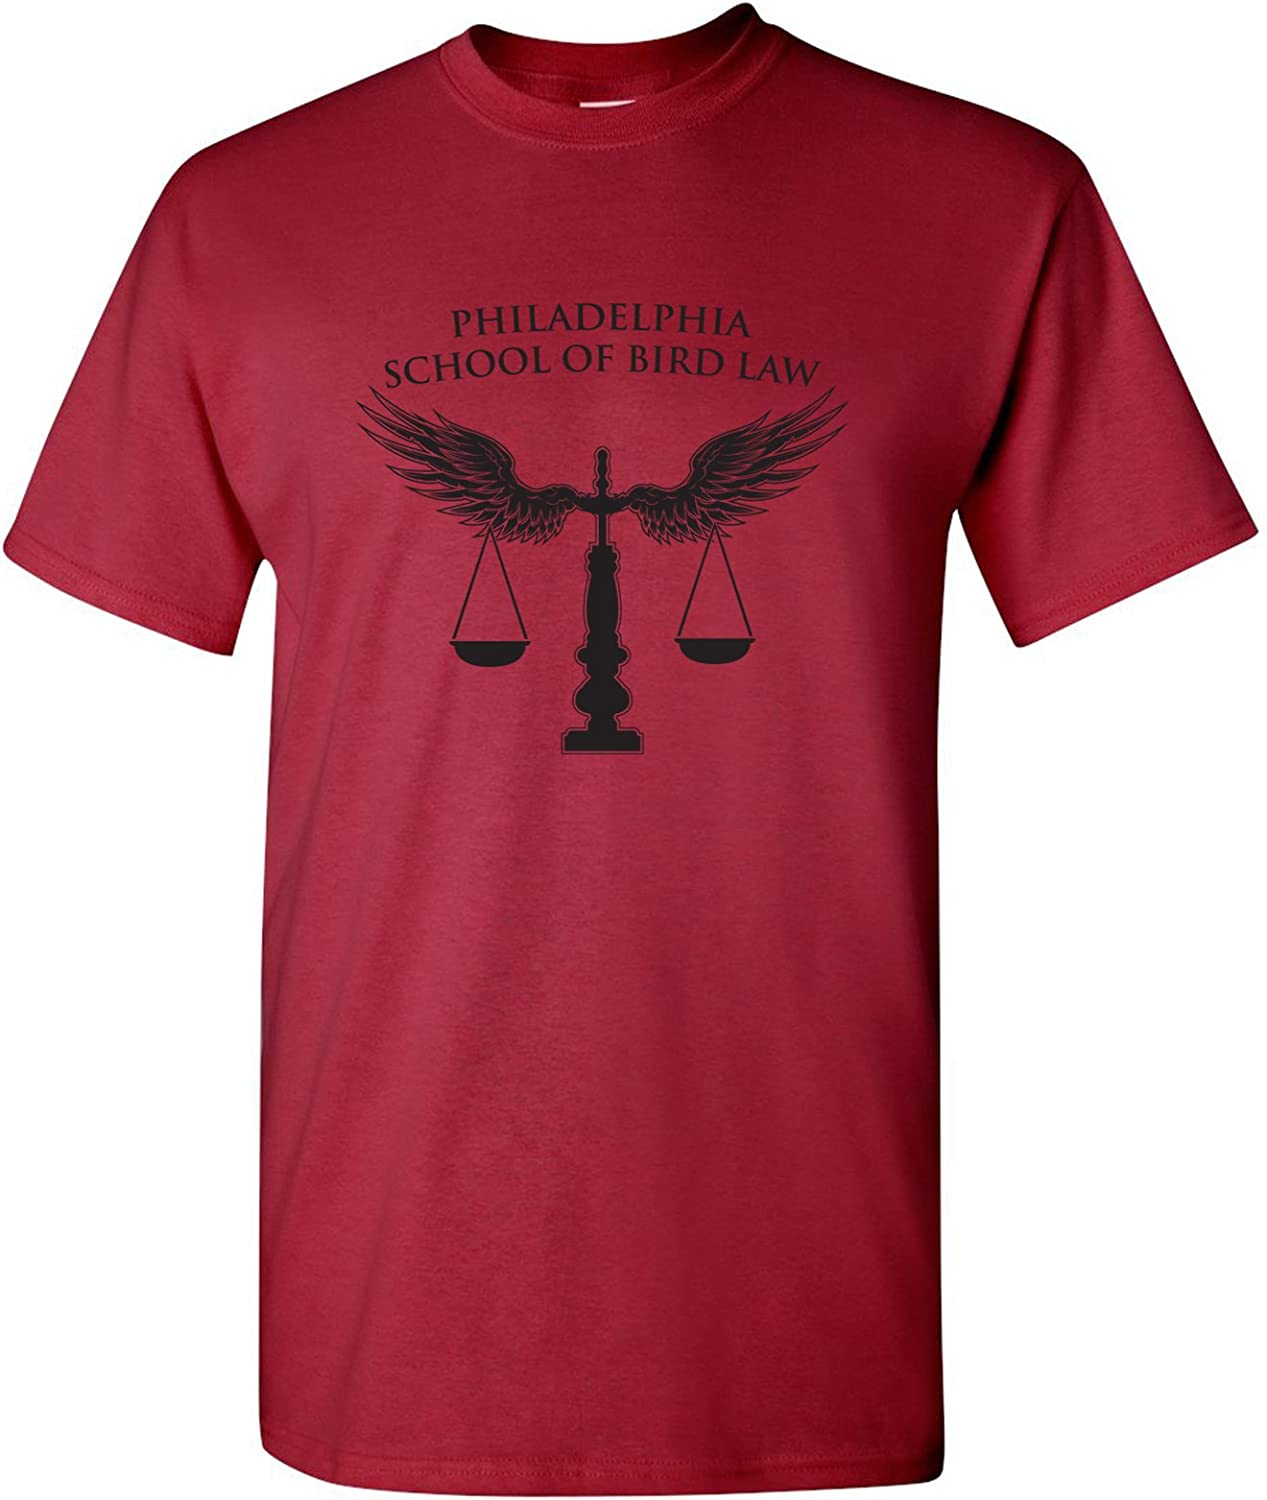 Philadelphia School of Bird Law - Funny TV Show Attorney Lawyer T Shirt